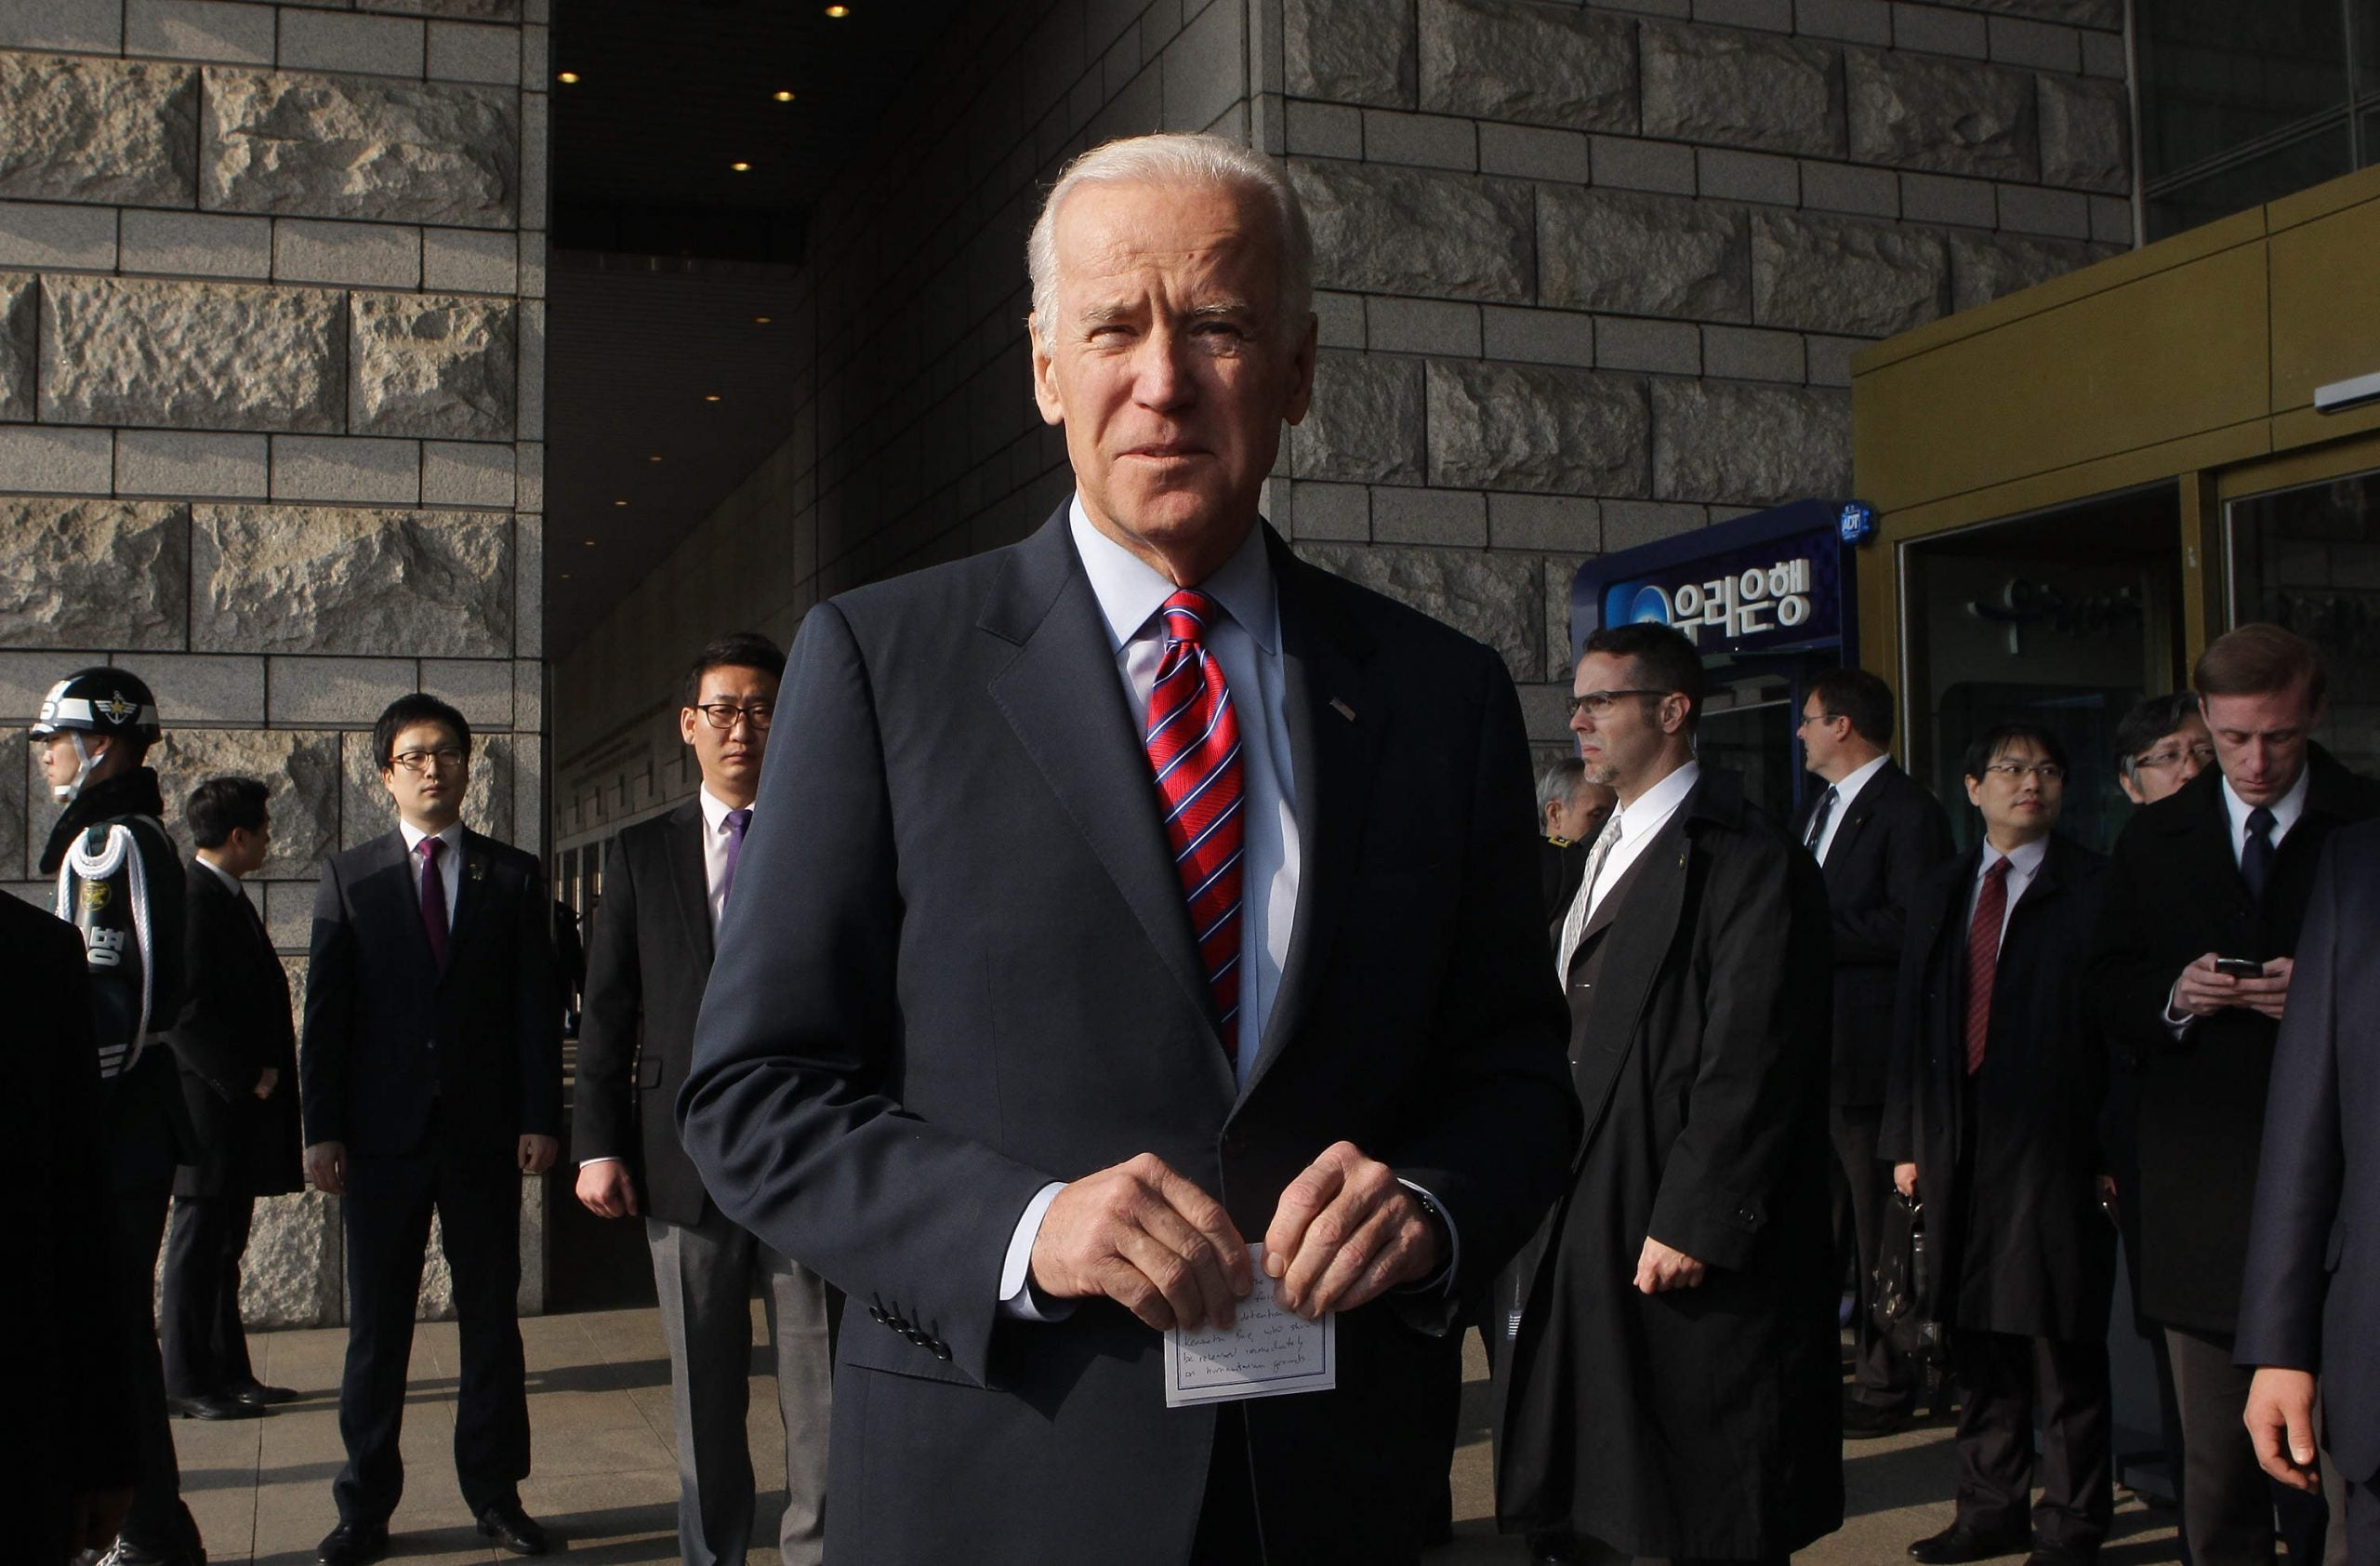 Joe Biden could yet be the one to beat Hillary Clinton